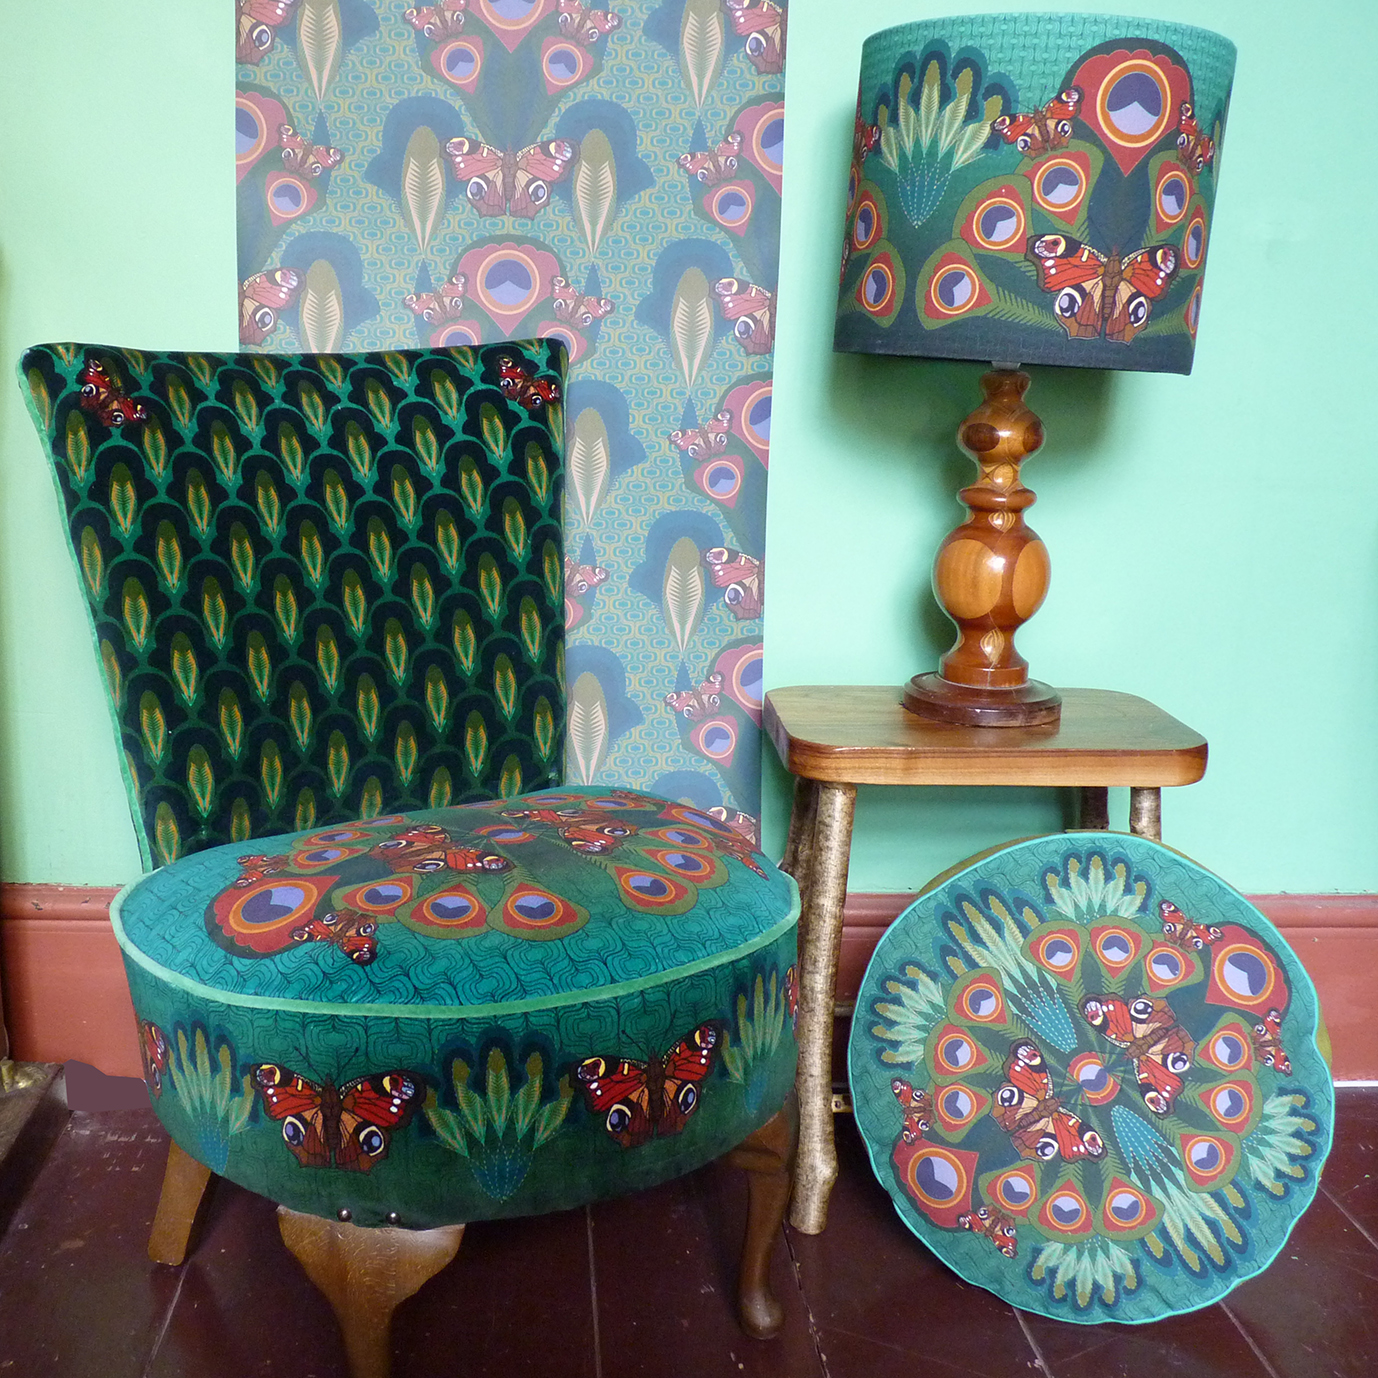 Peacock butterfly wallpaper, chair , lampshade and round box cushion